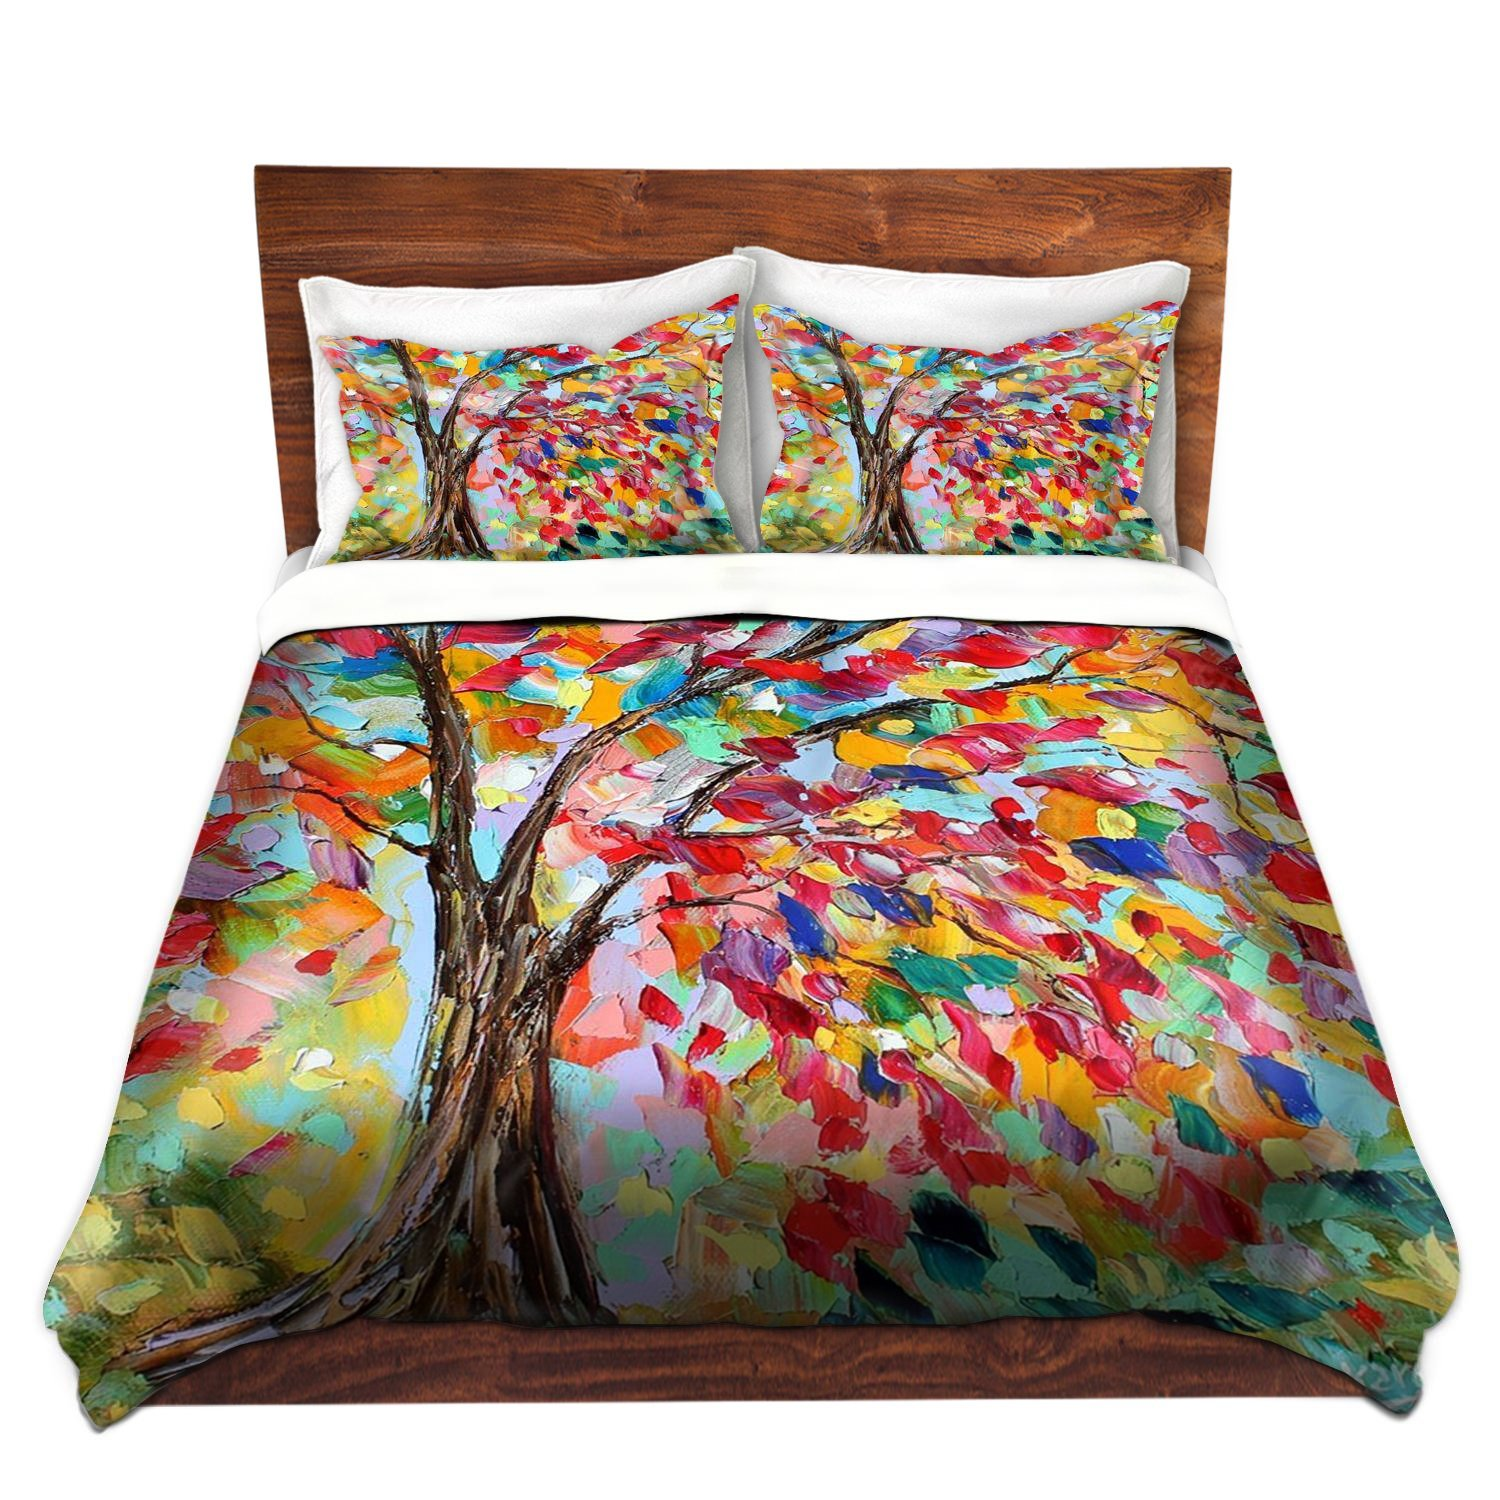 Bamboo Comforters With More Ease Bedding With Style